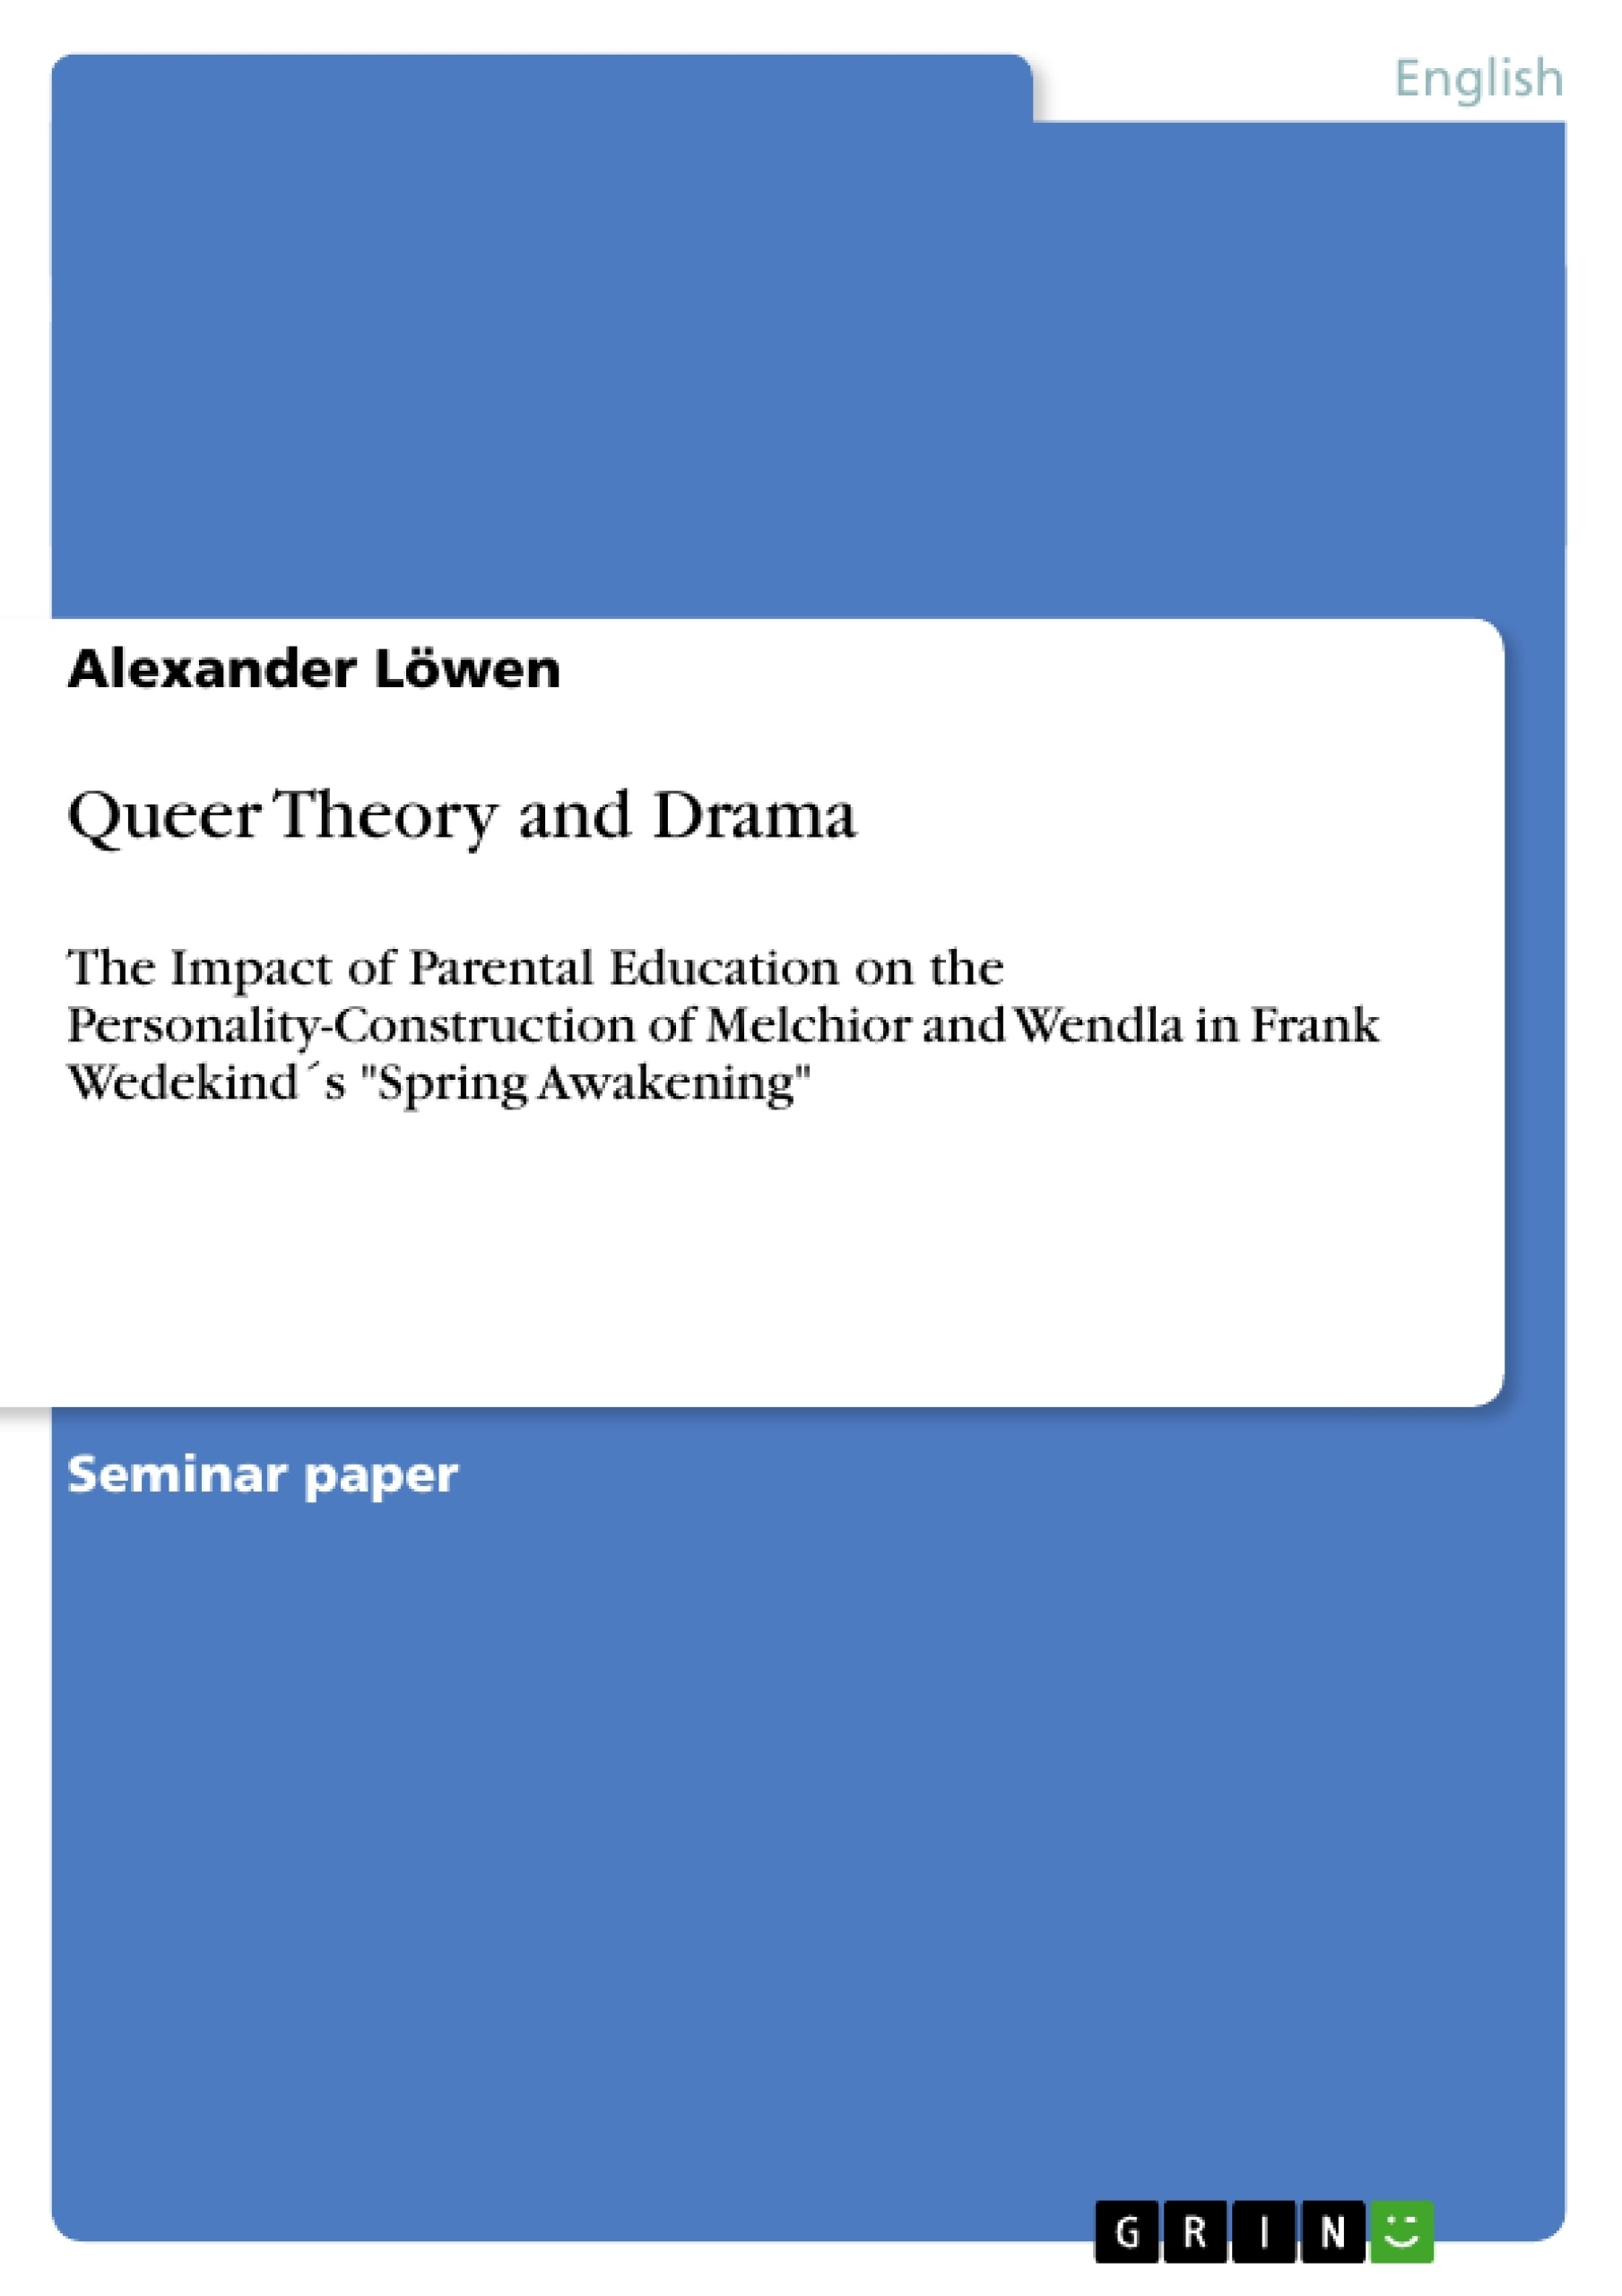 Title: Queer Theory and Drama